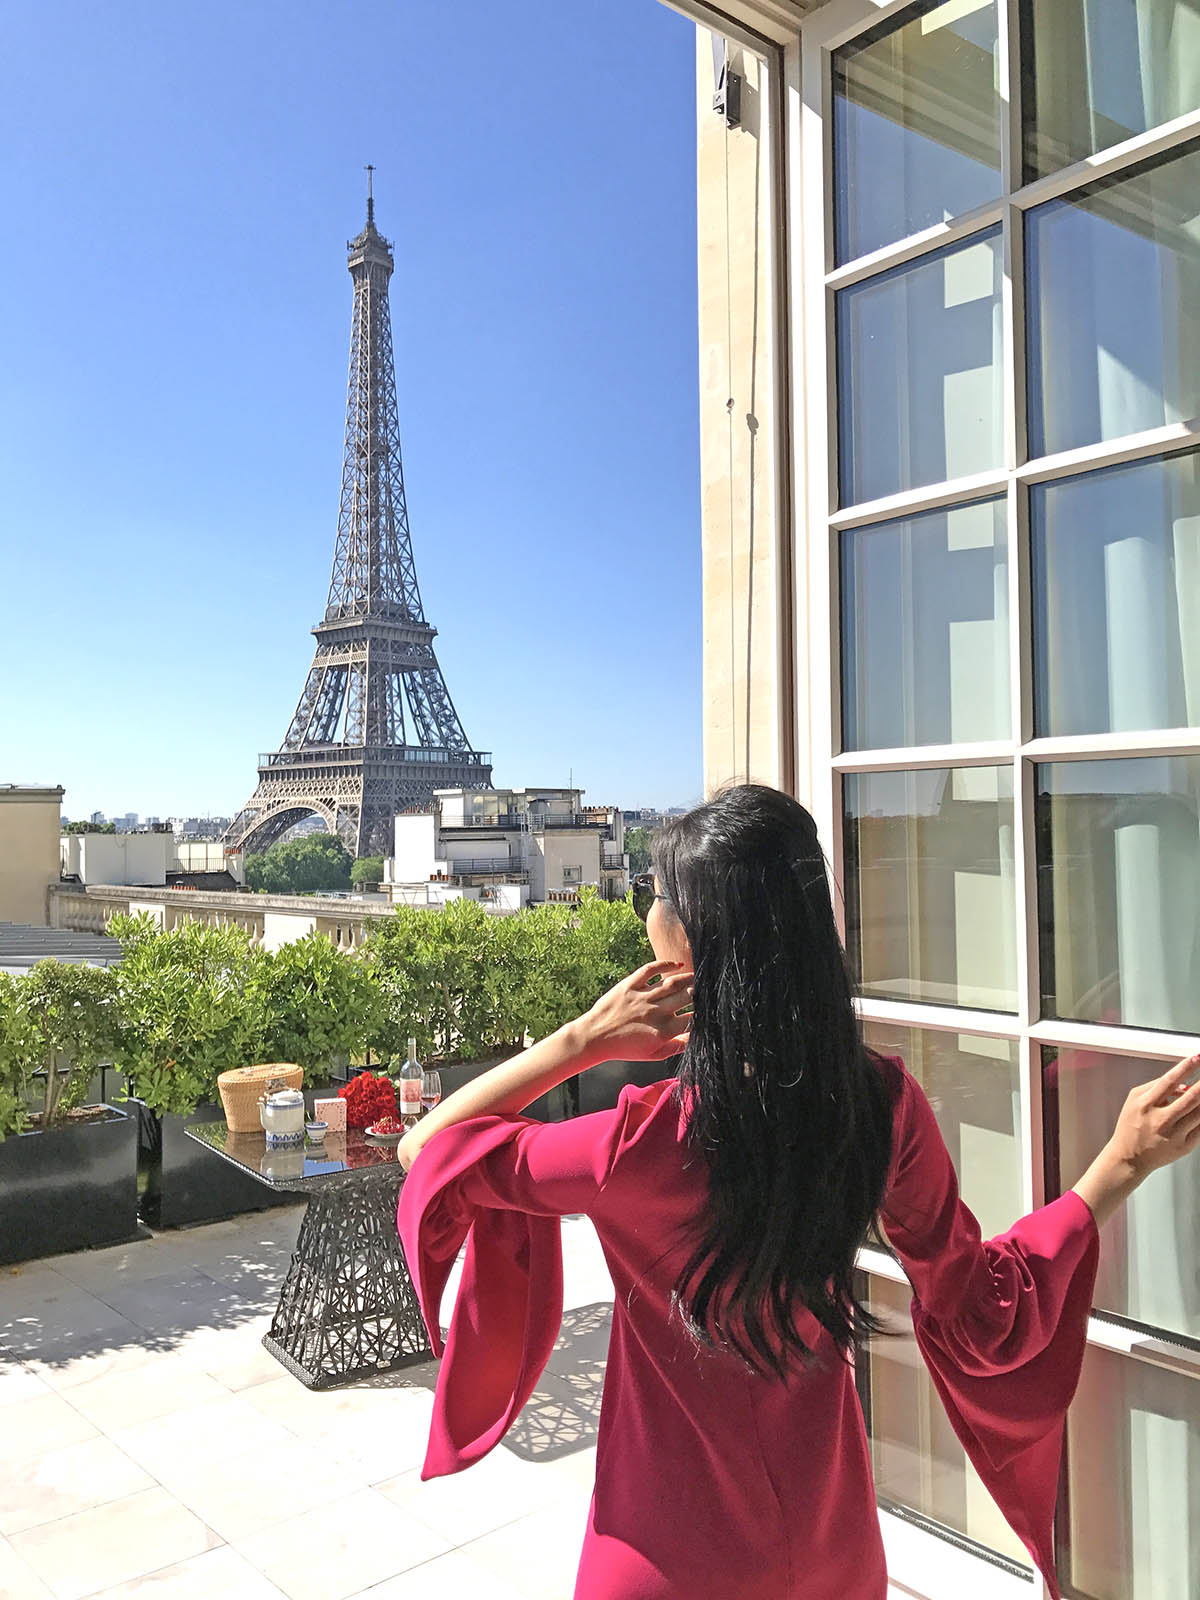 91 Paris Hotels With View Of Eiffel Tower Hotels Near